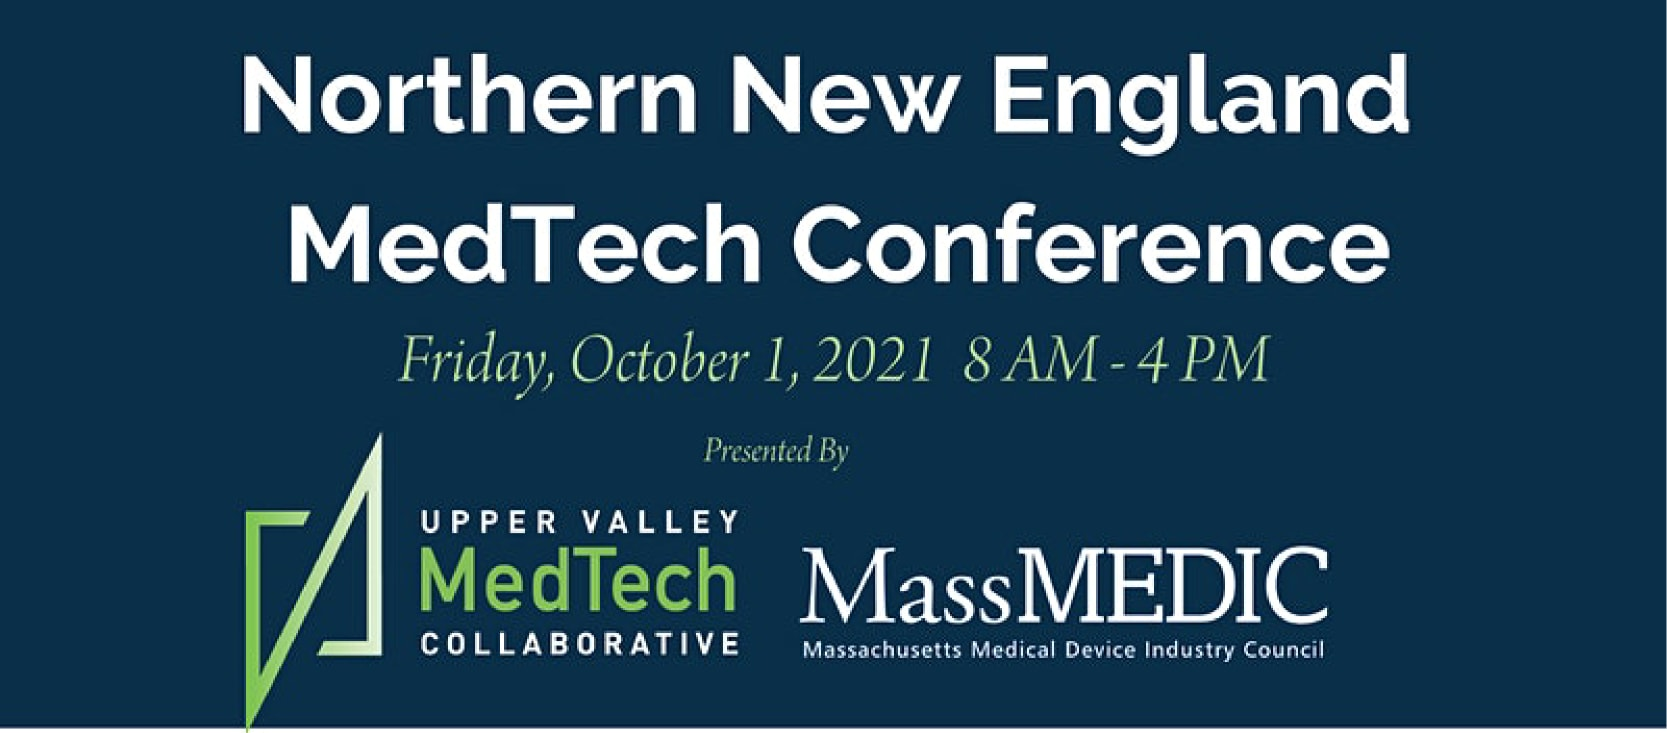 Northern-New-England-MedTech-Conference-Email-Header.png